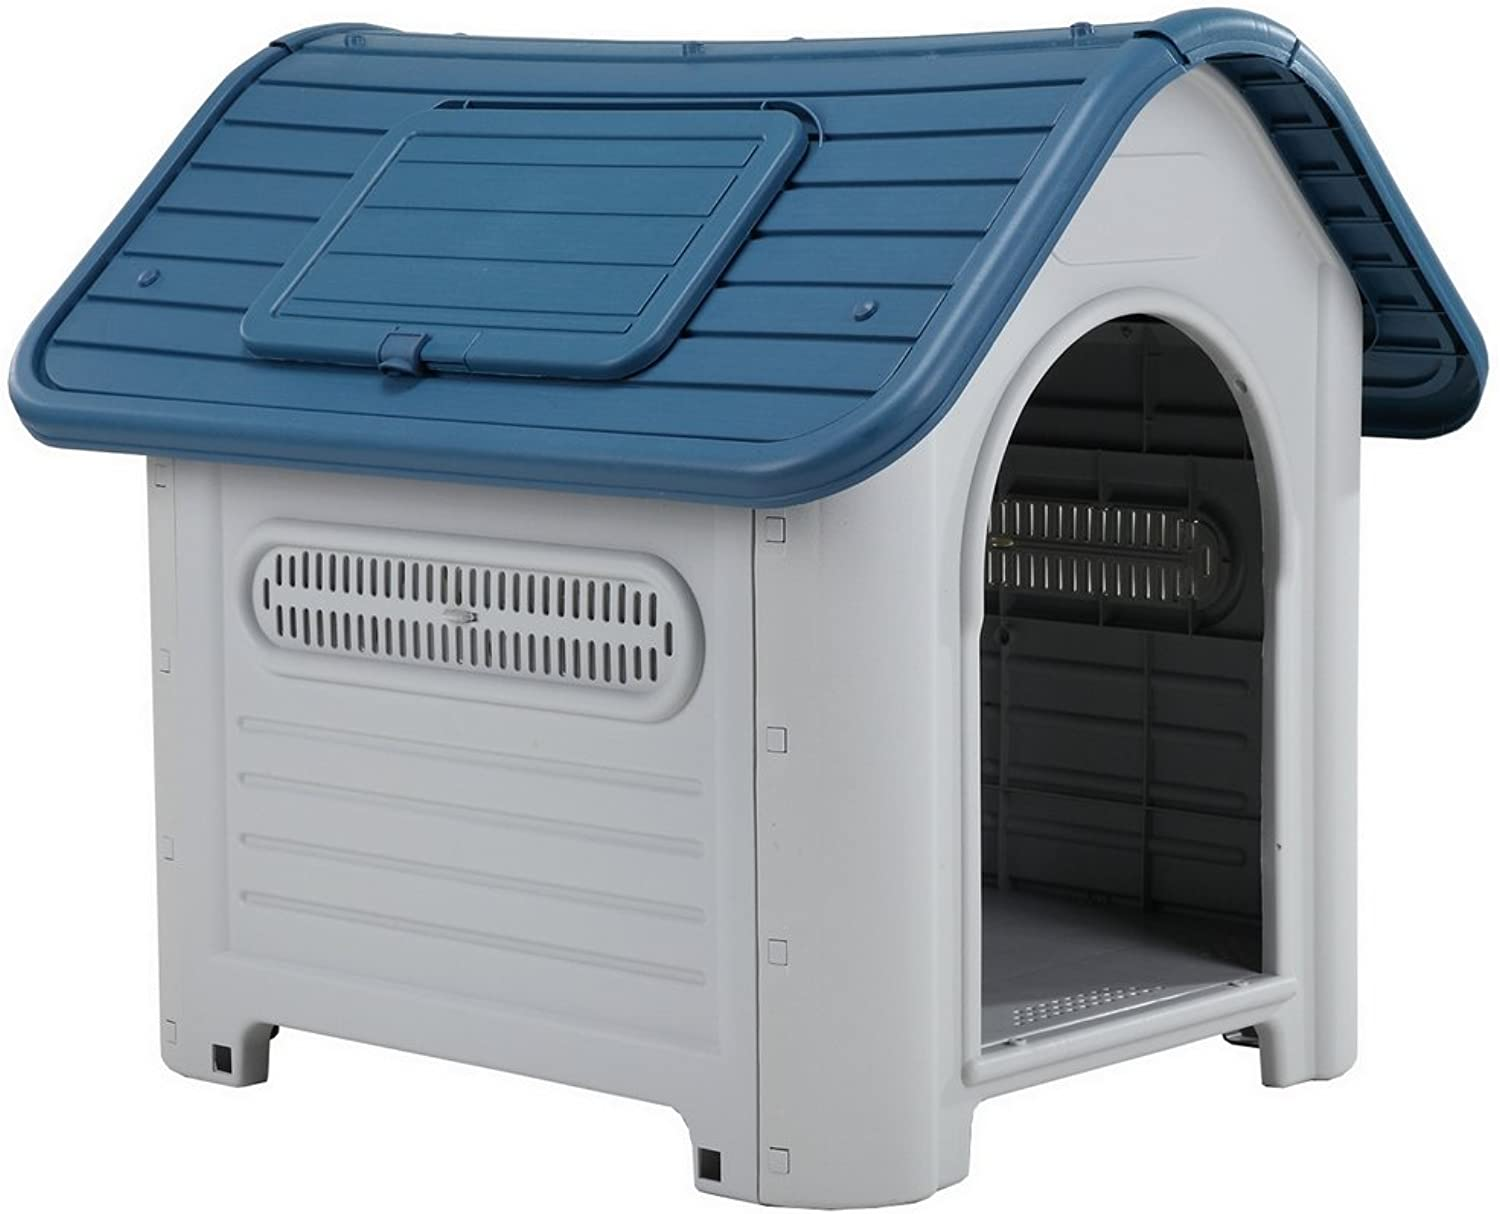 Confidence Pet Weatherproof Tough Large Plastic Dog Puppy Kennel with Vents